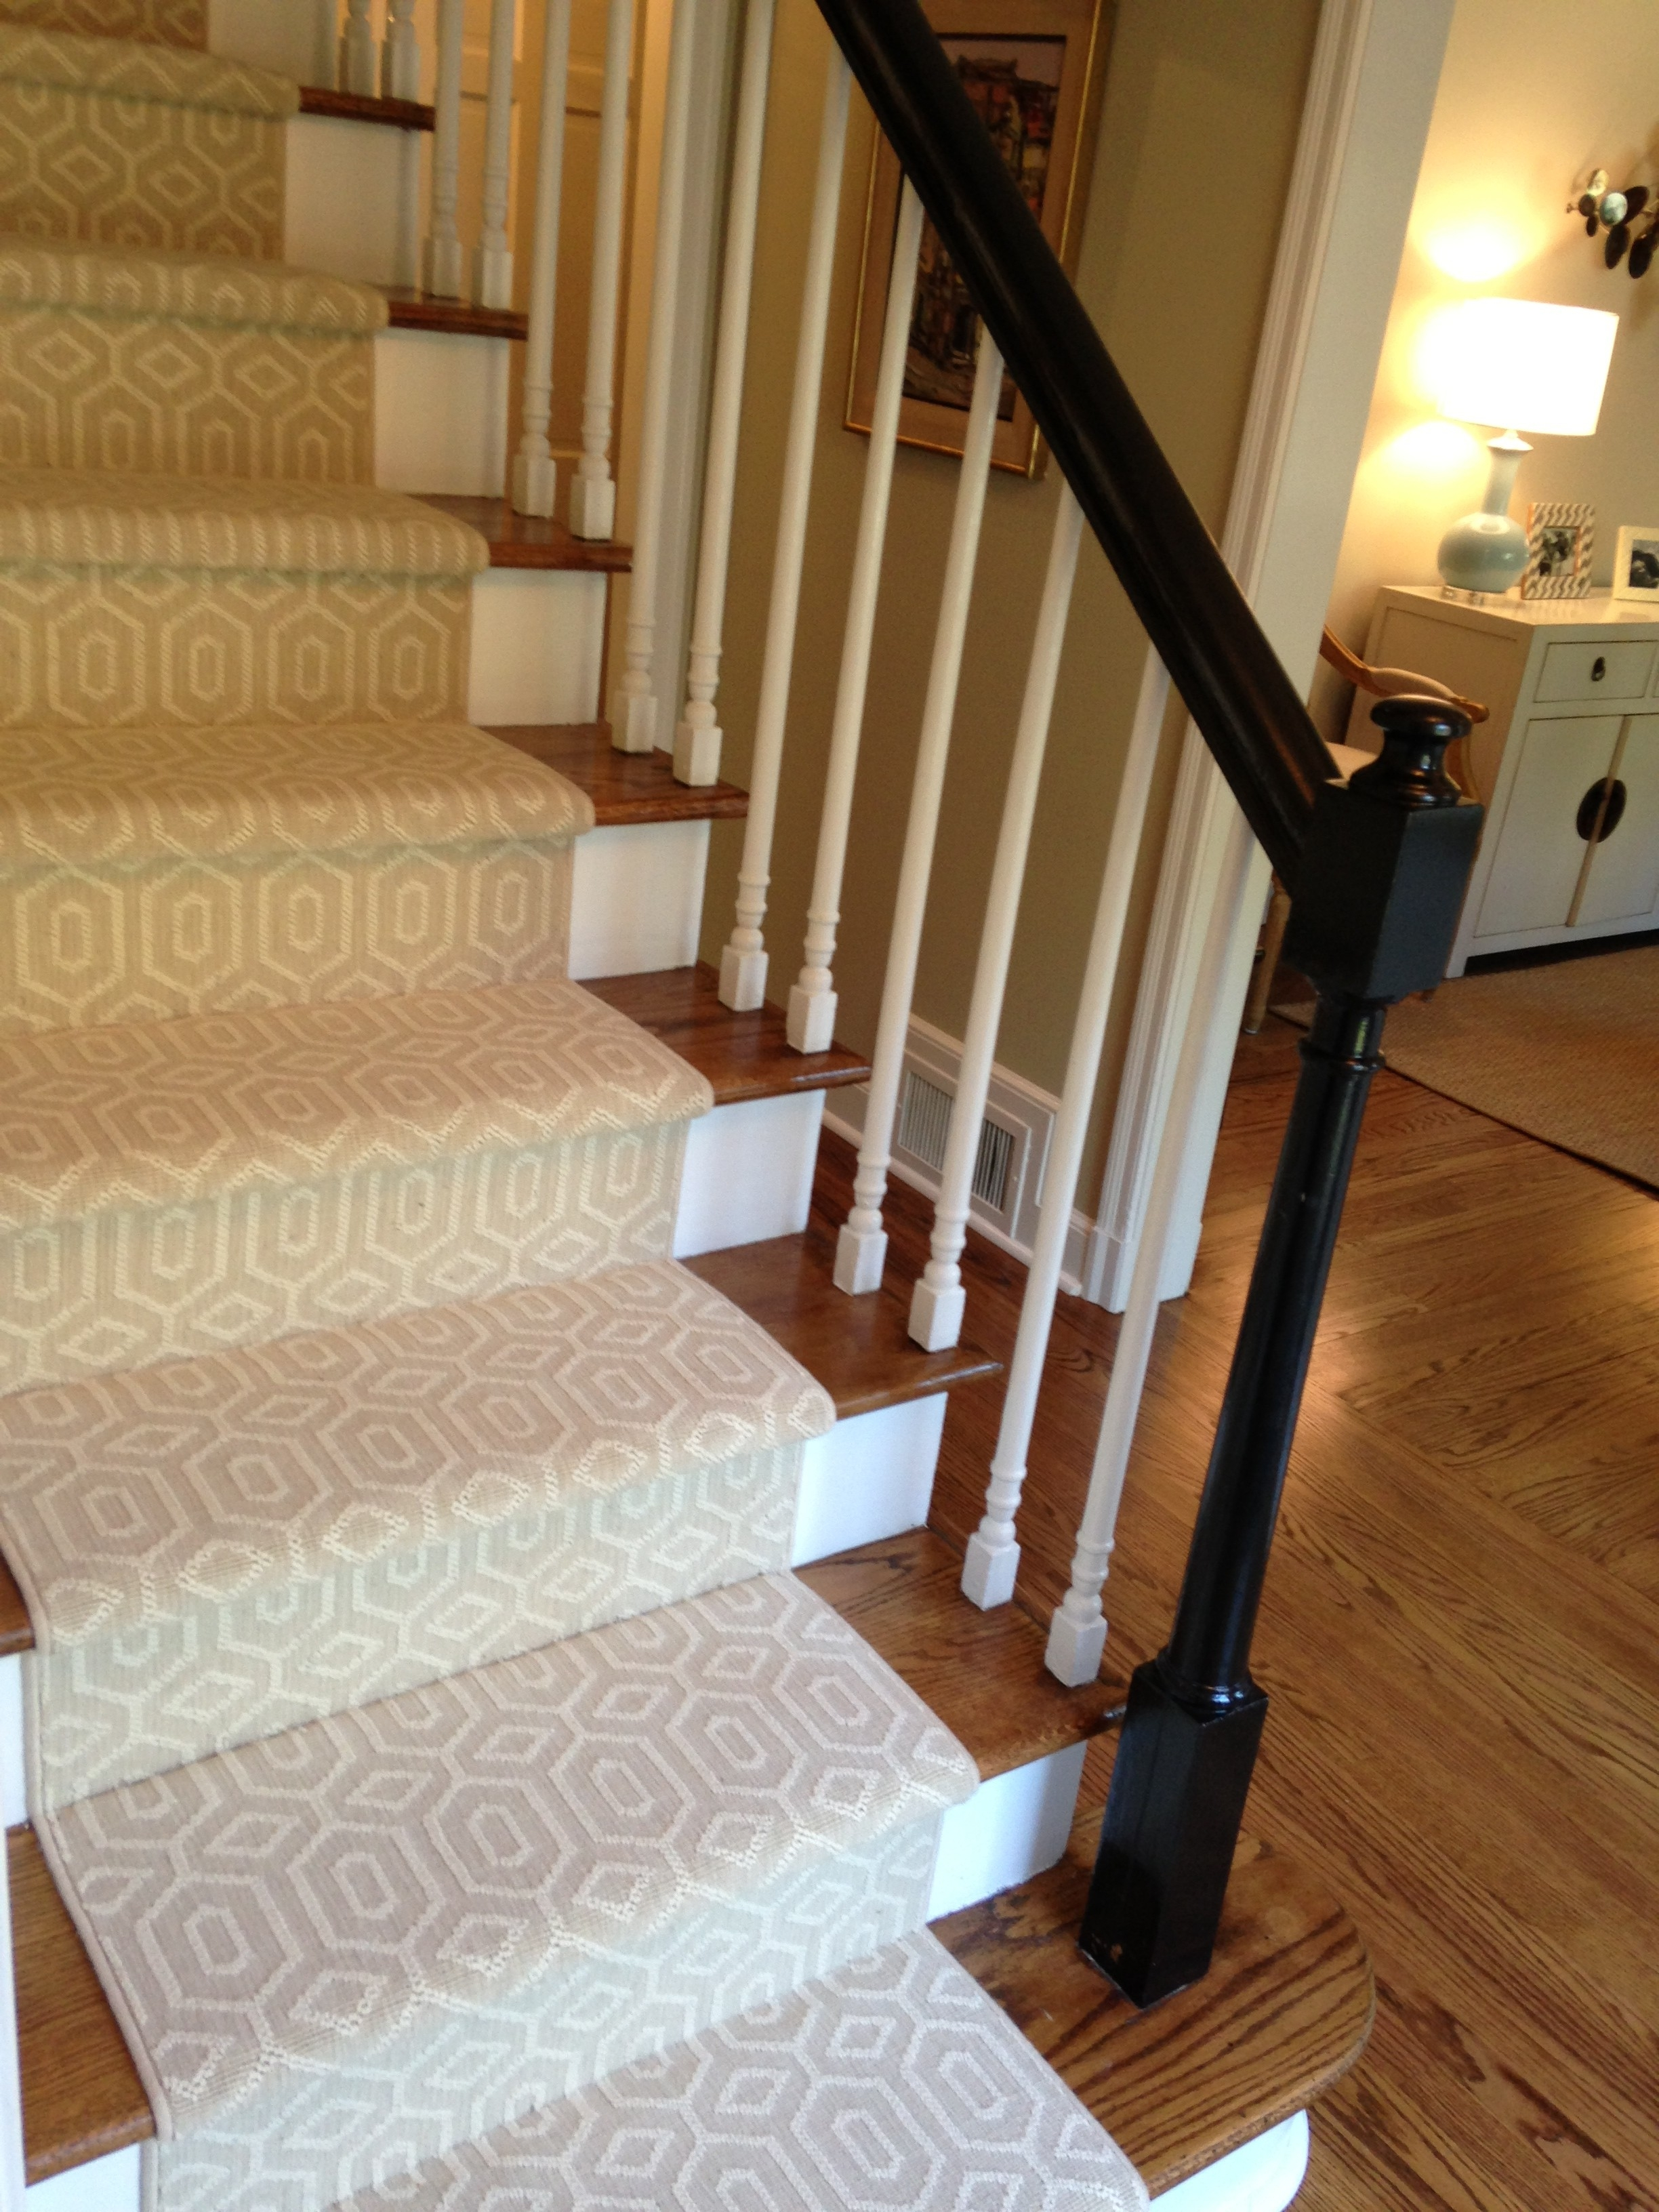 20 Best Ideas of Rug Runners for Stairs